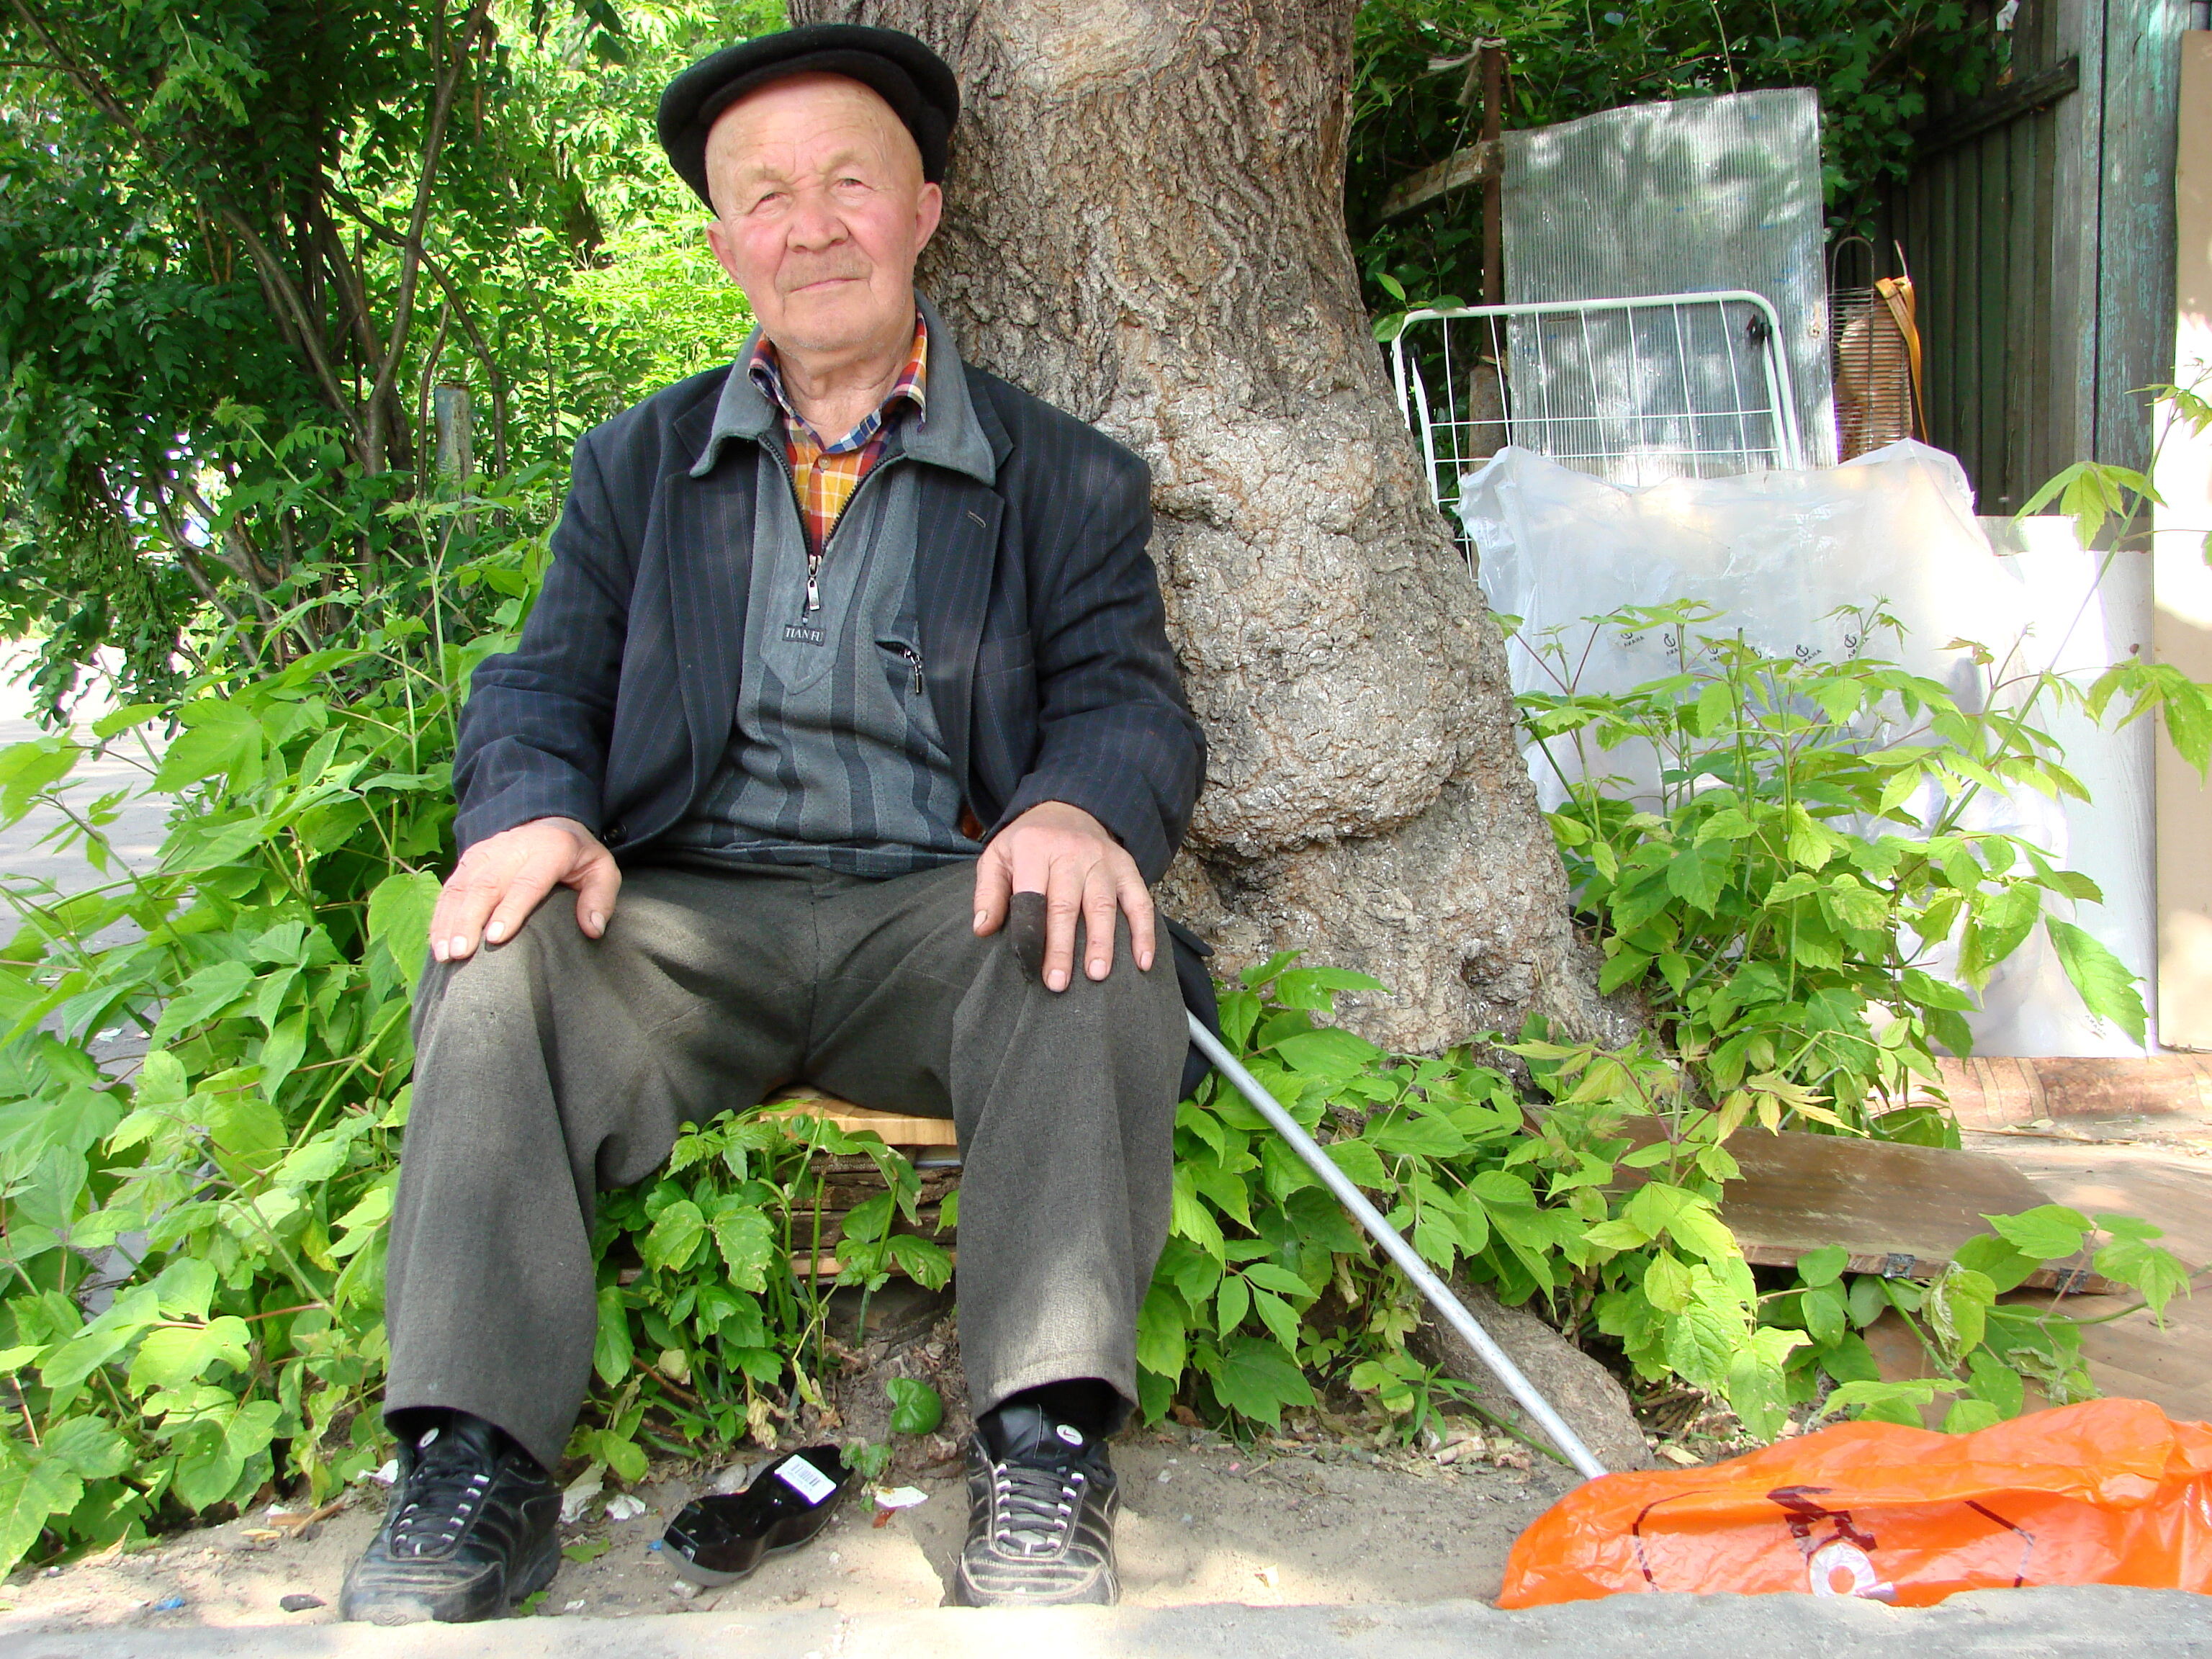 Old_Tatar_Man_-_Kazan_-_Russia In What Ways Does Your Health Change as You Age?